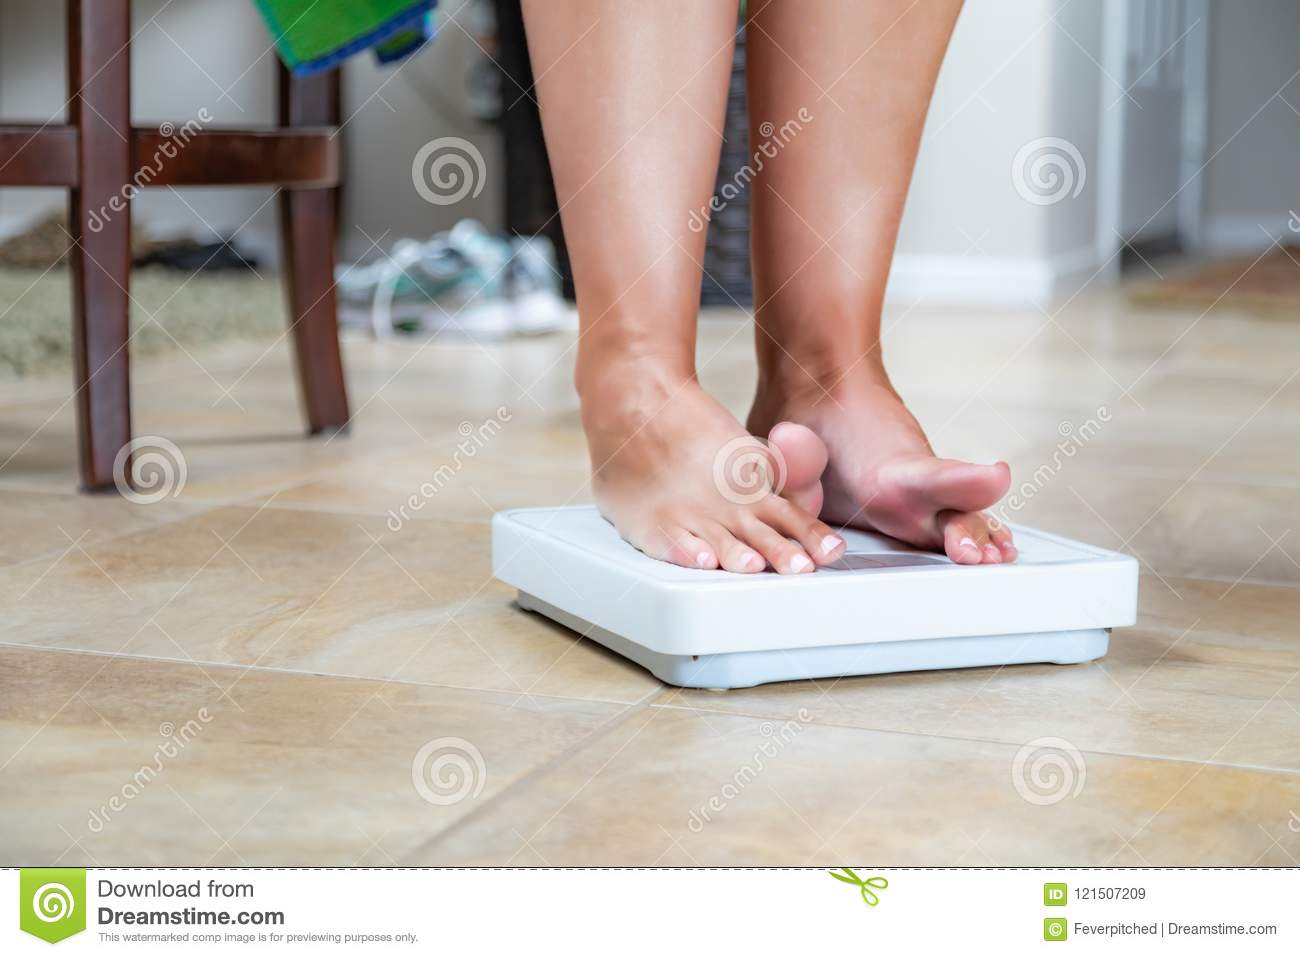 Woman Standing On Weighing Scales High-Res Stock Photo